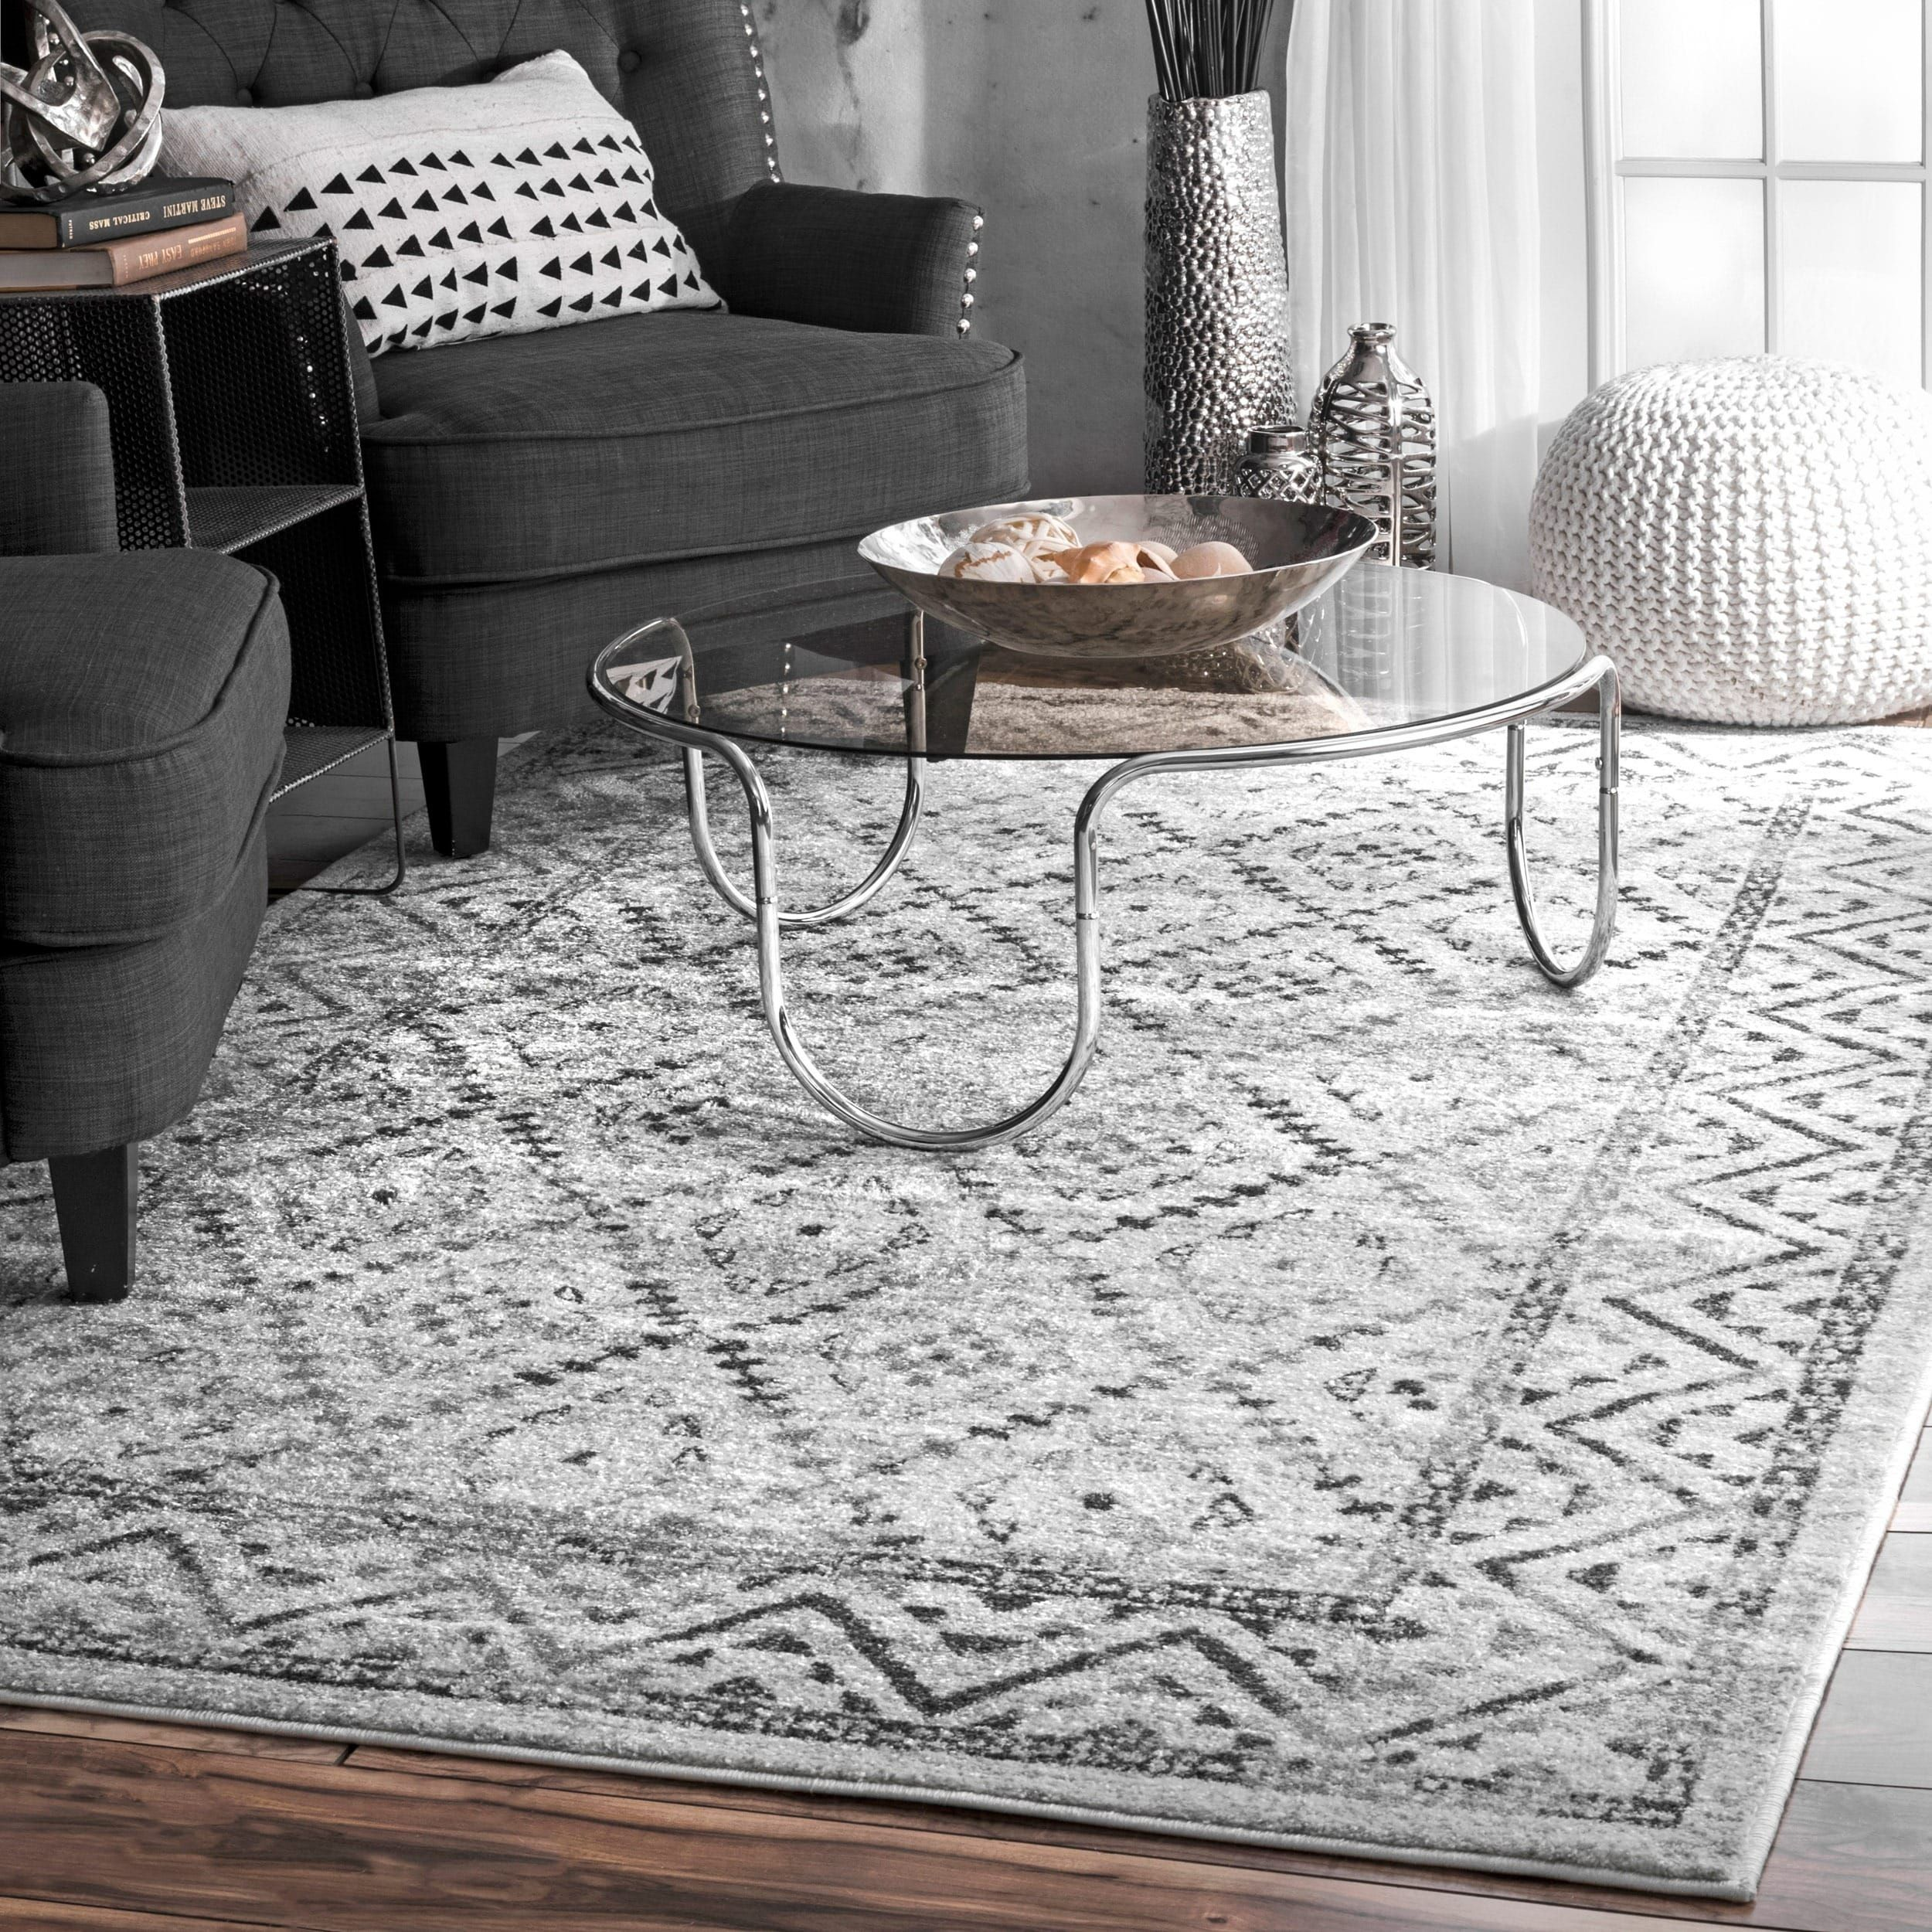 Strick Bolton Zetterlund Traditional Vintage Inspired Tribal Diamond Trellis Border Grey Area Rug 7 6 X 9 6 Products Rugs Cool Rugs Trellis Rug